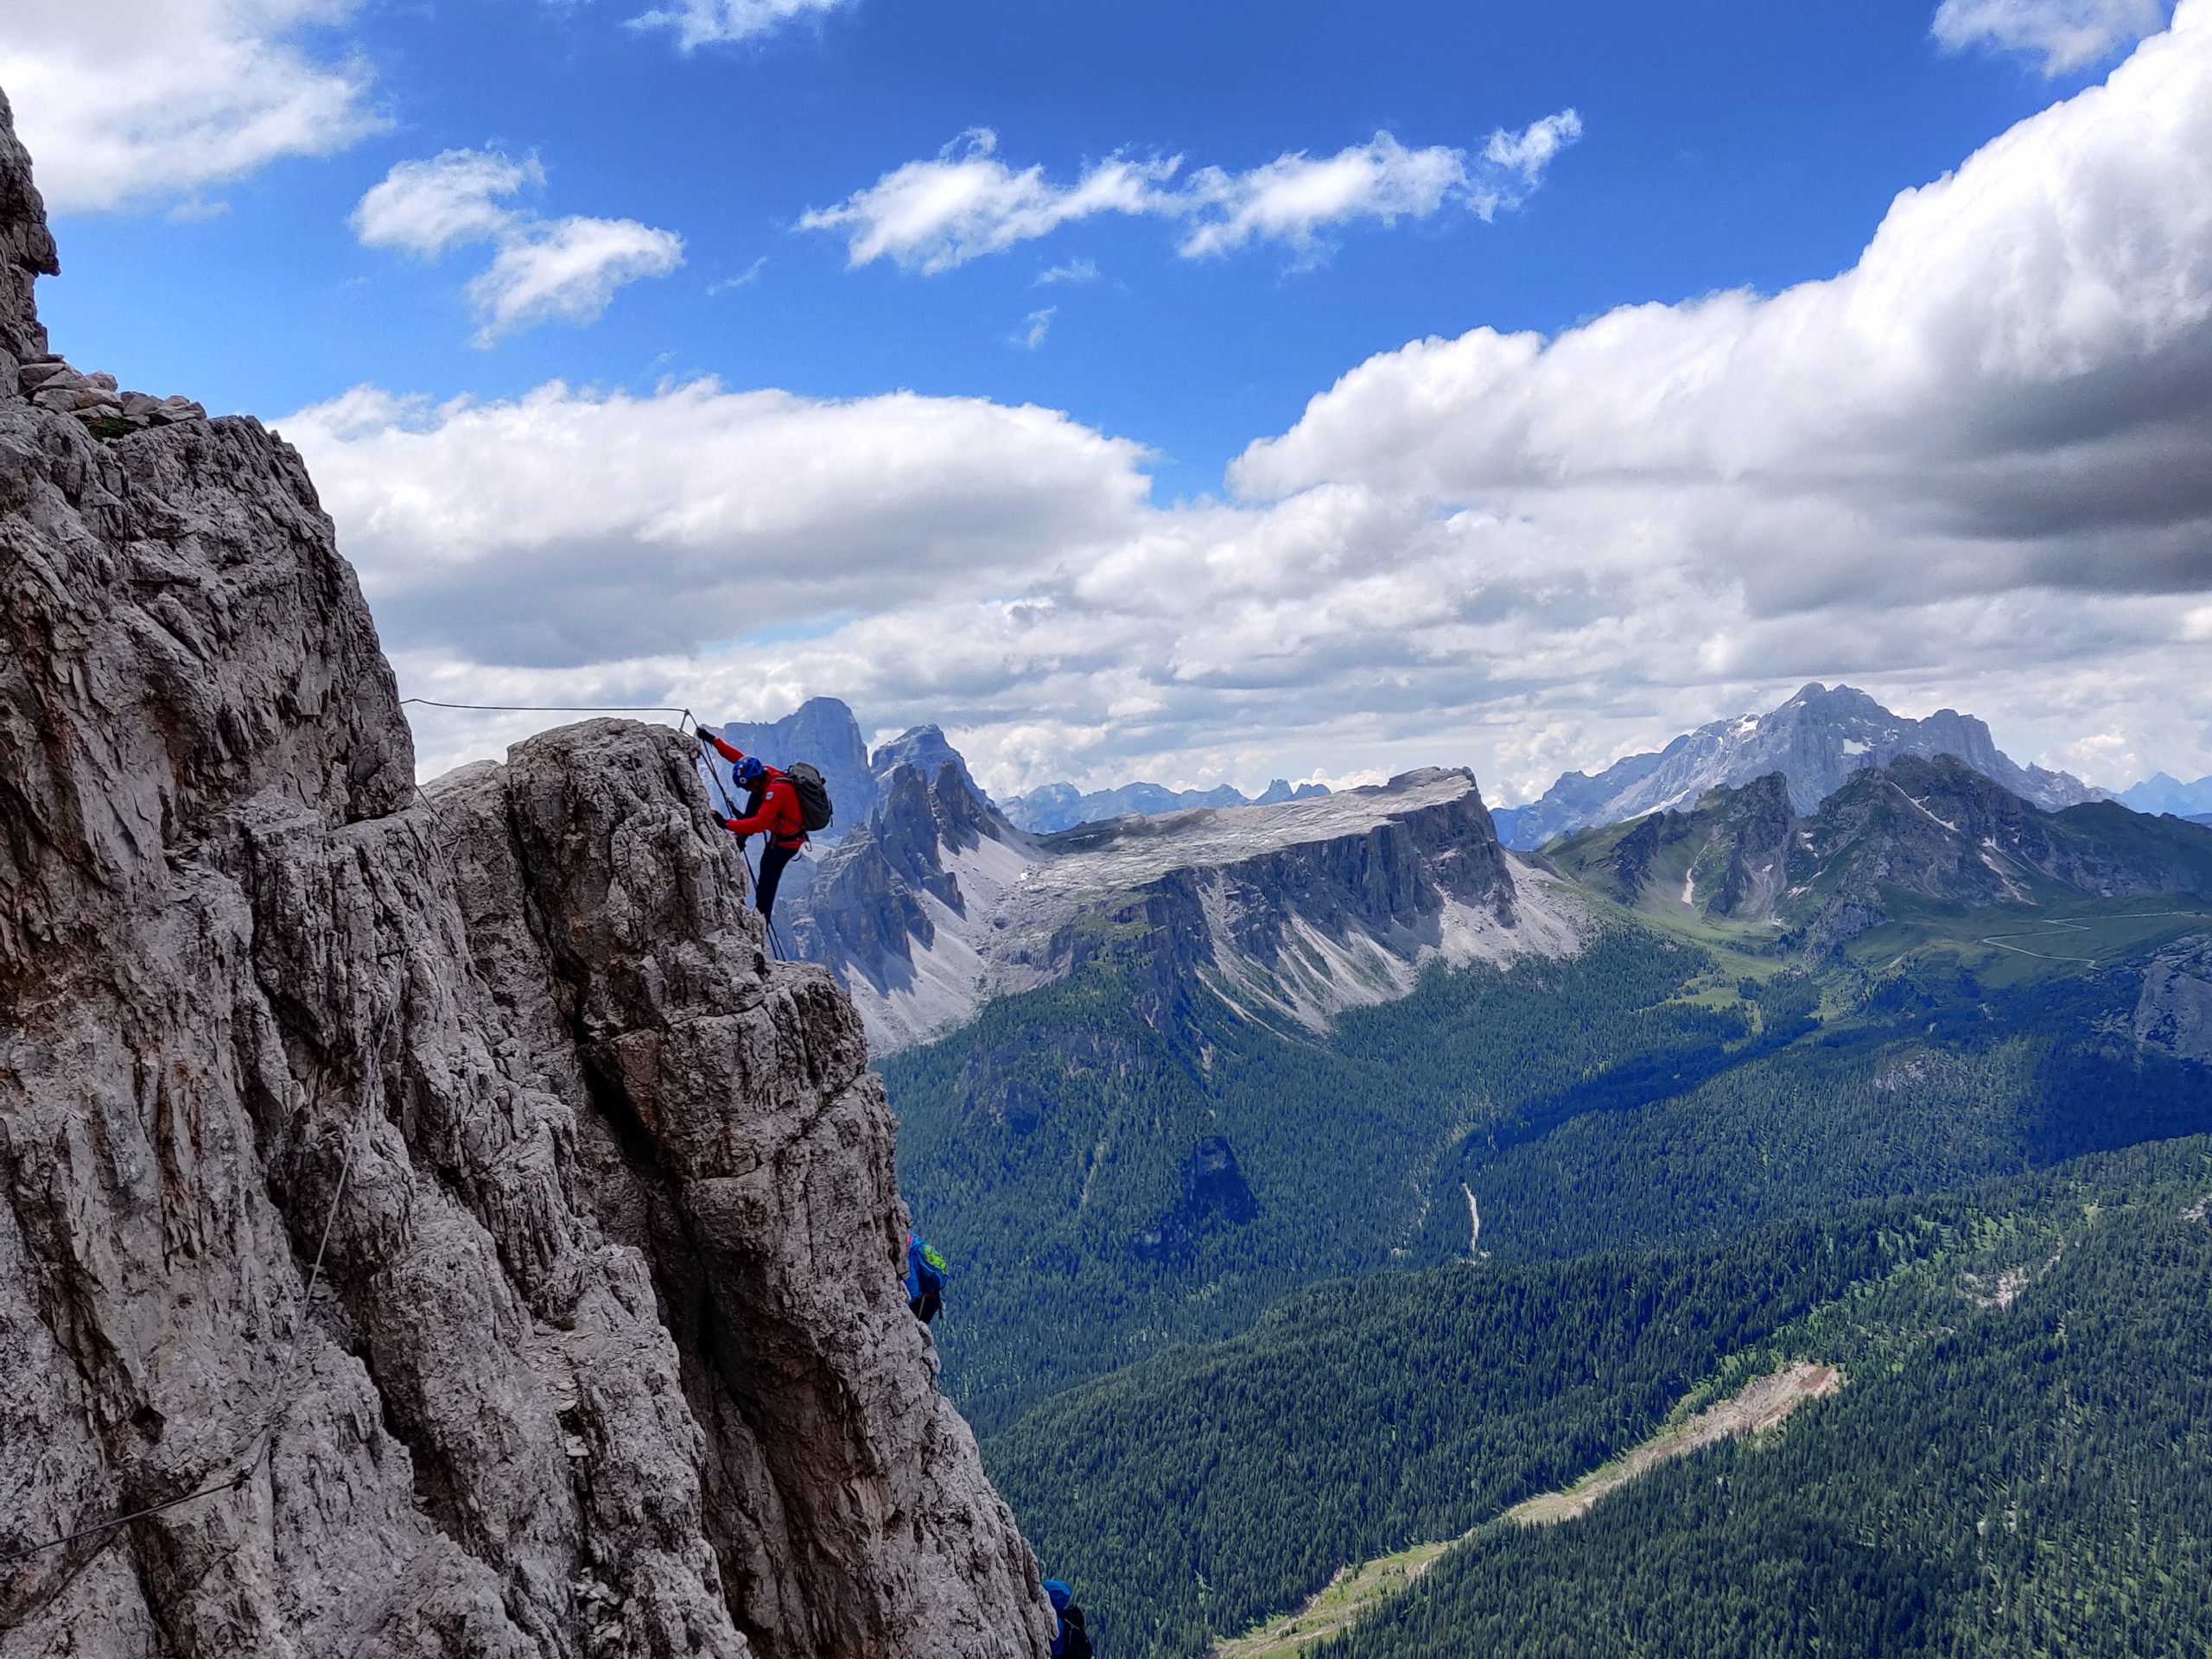 Be free, let yourself go in Cortina d'Ampezzo - Summer - Autumn 2020